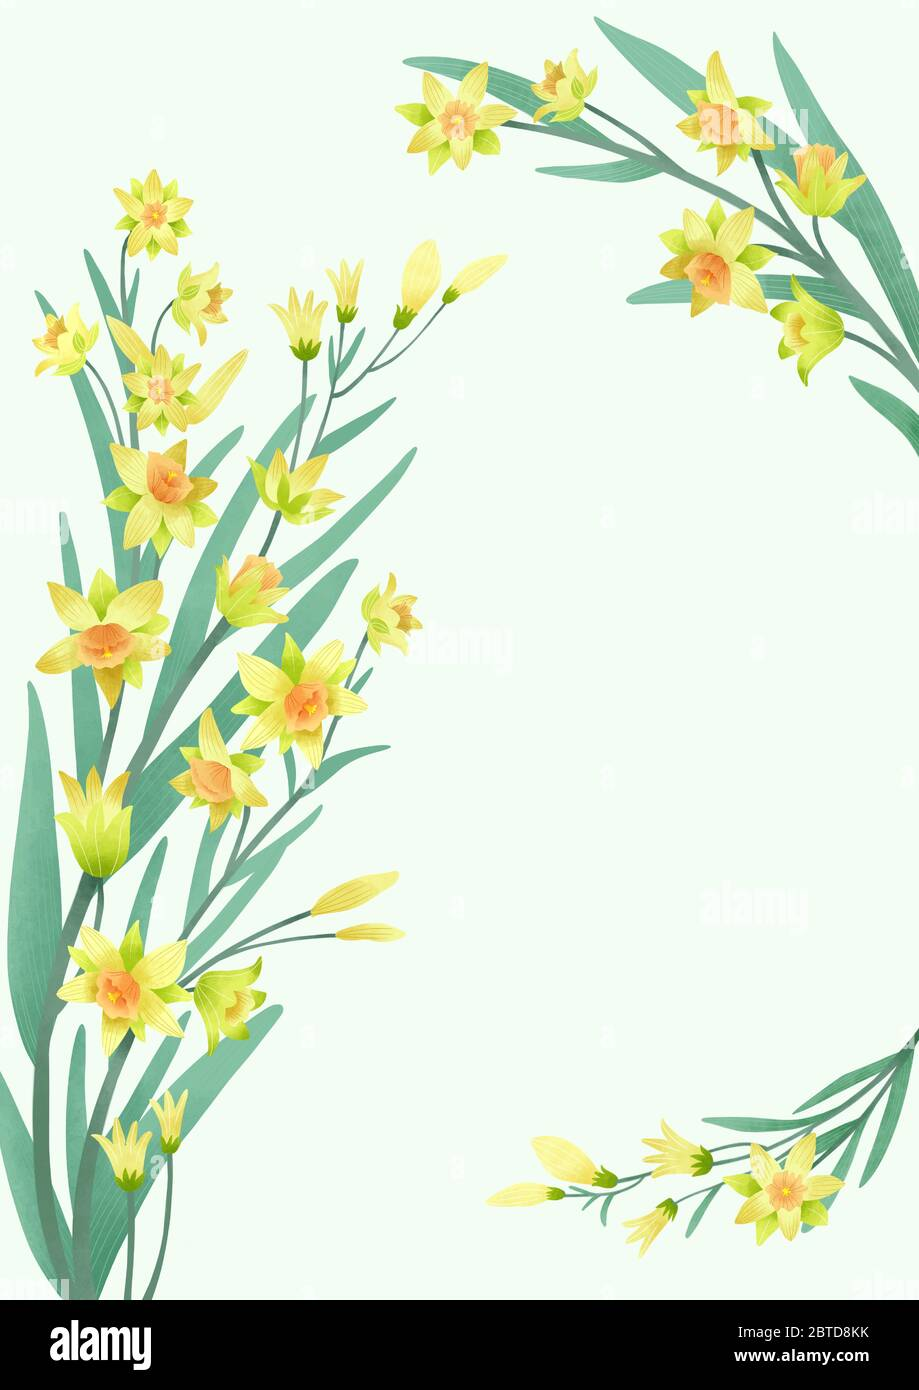 Spring Grass Border With Early Spring Flowers And Butterfly Isolated On  White Background Illustration Of Colored Tulips Daffodils And Daisies  Garden Bed Springtime Design Element Vector Eps 10 Stock Illustration -  Download